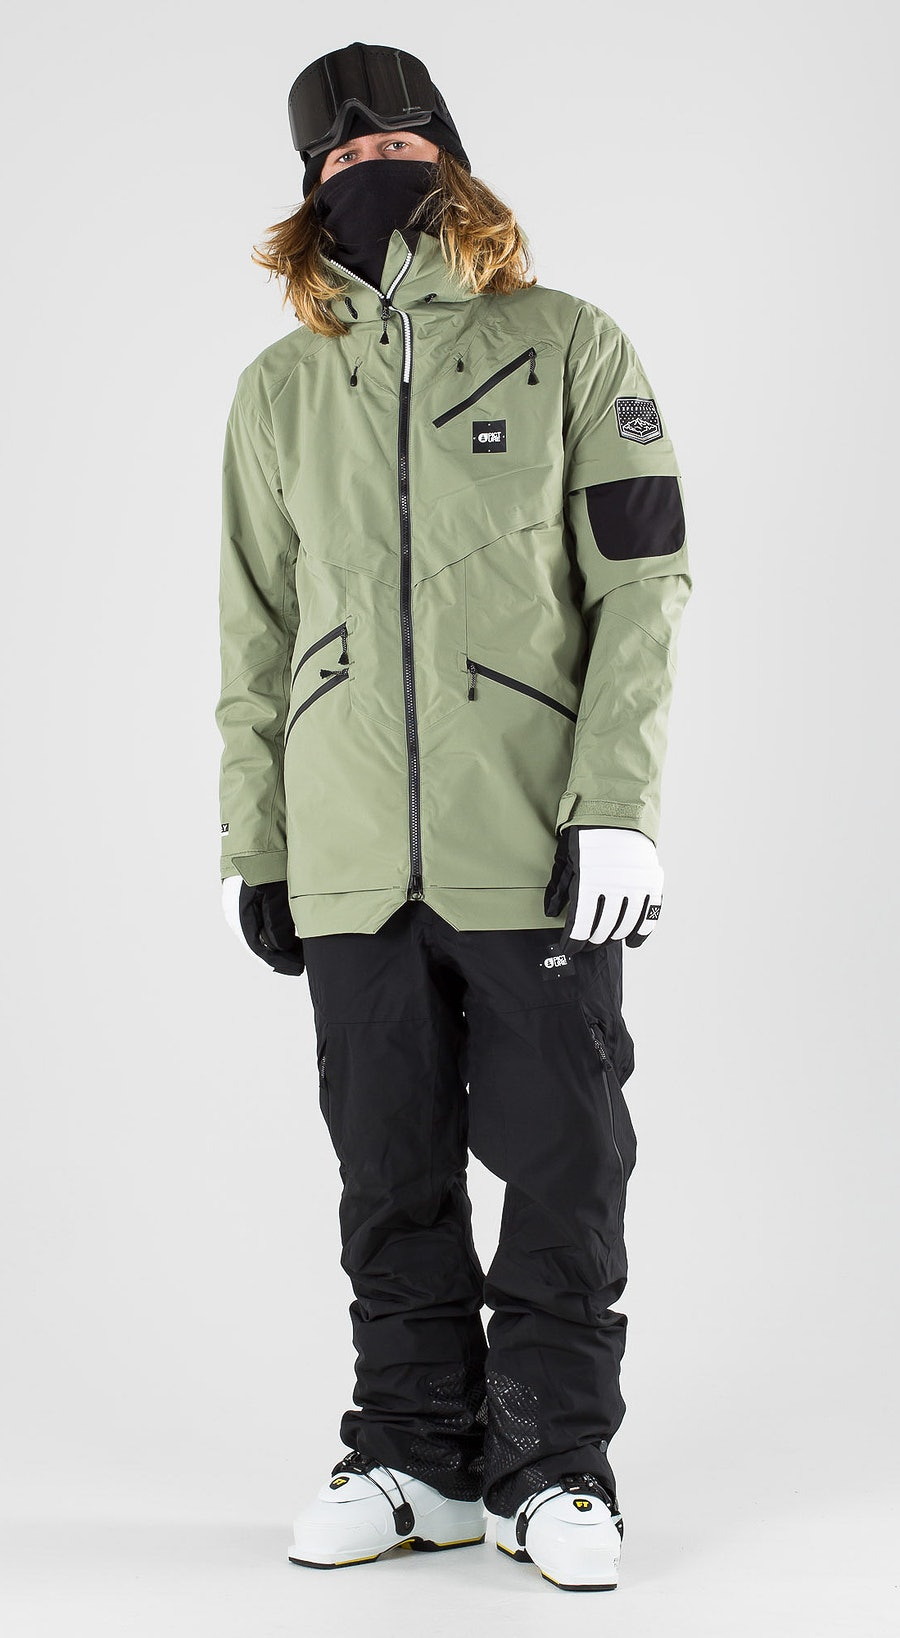 Picture Zephir Army Green Skibekleidung Multi